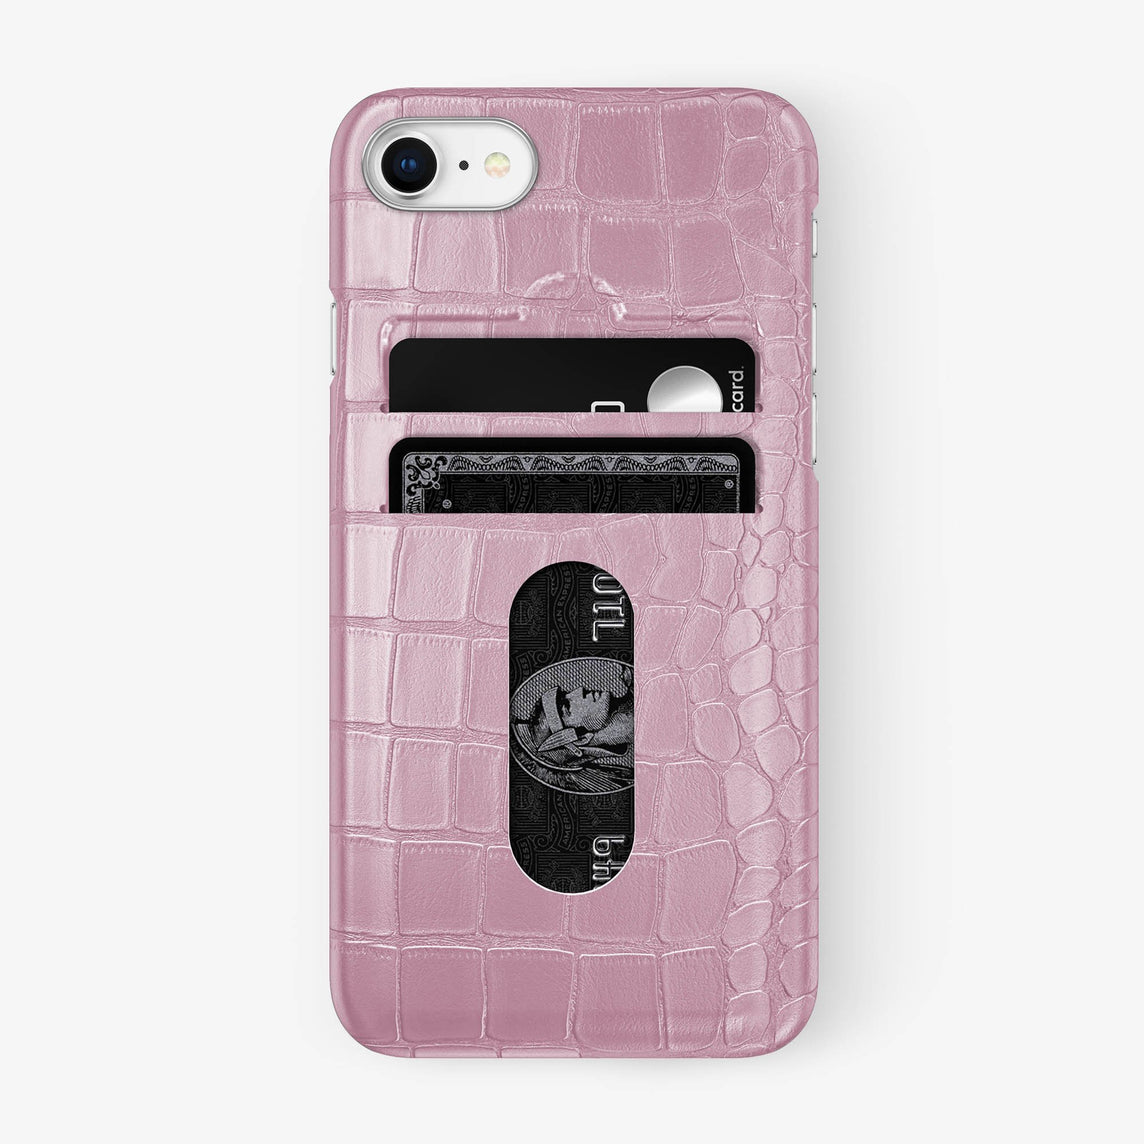 Alligator Card Holder Case iPhone 7/8 | Pink - Stainless Steel - Hadoro